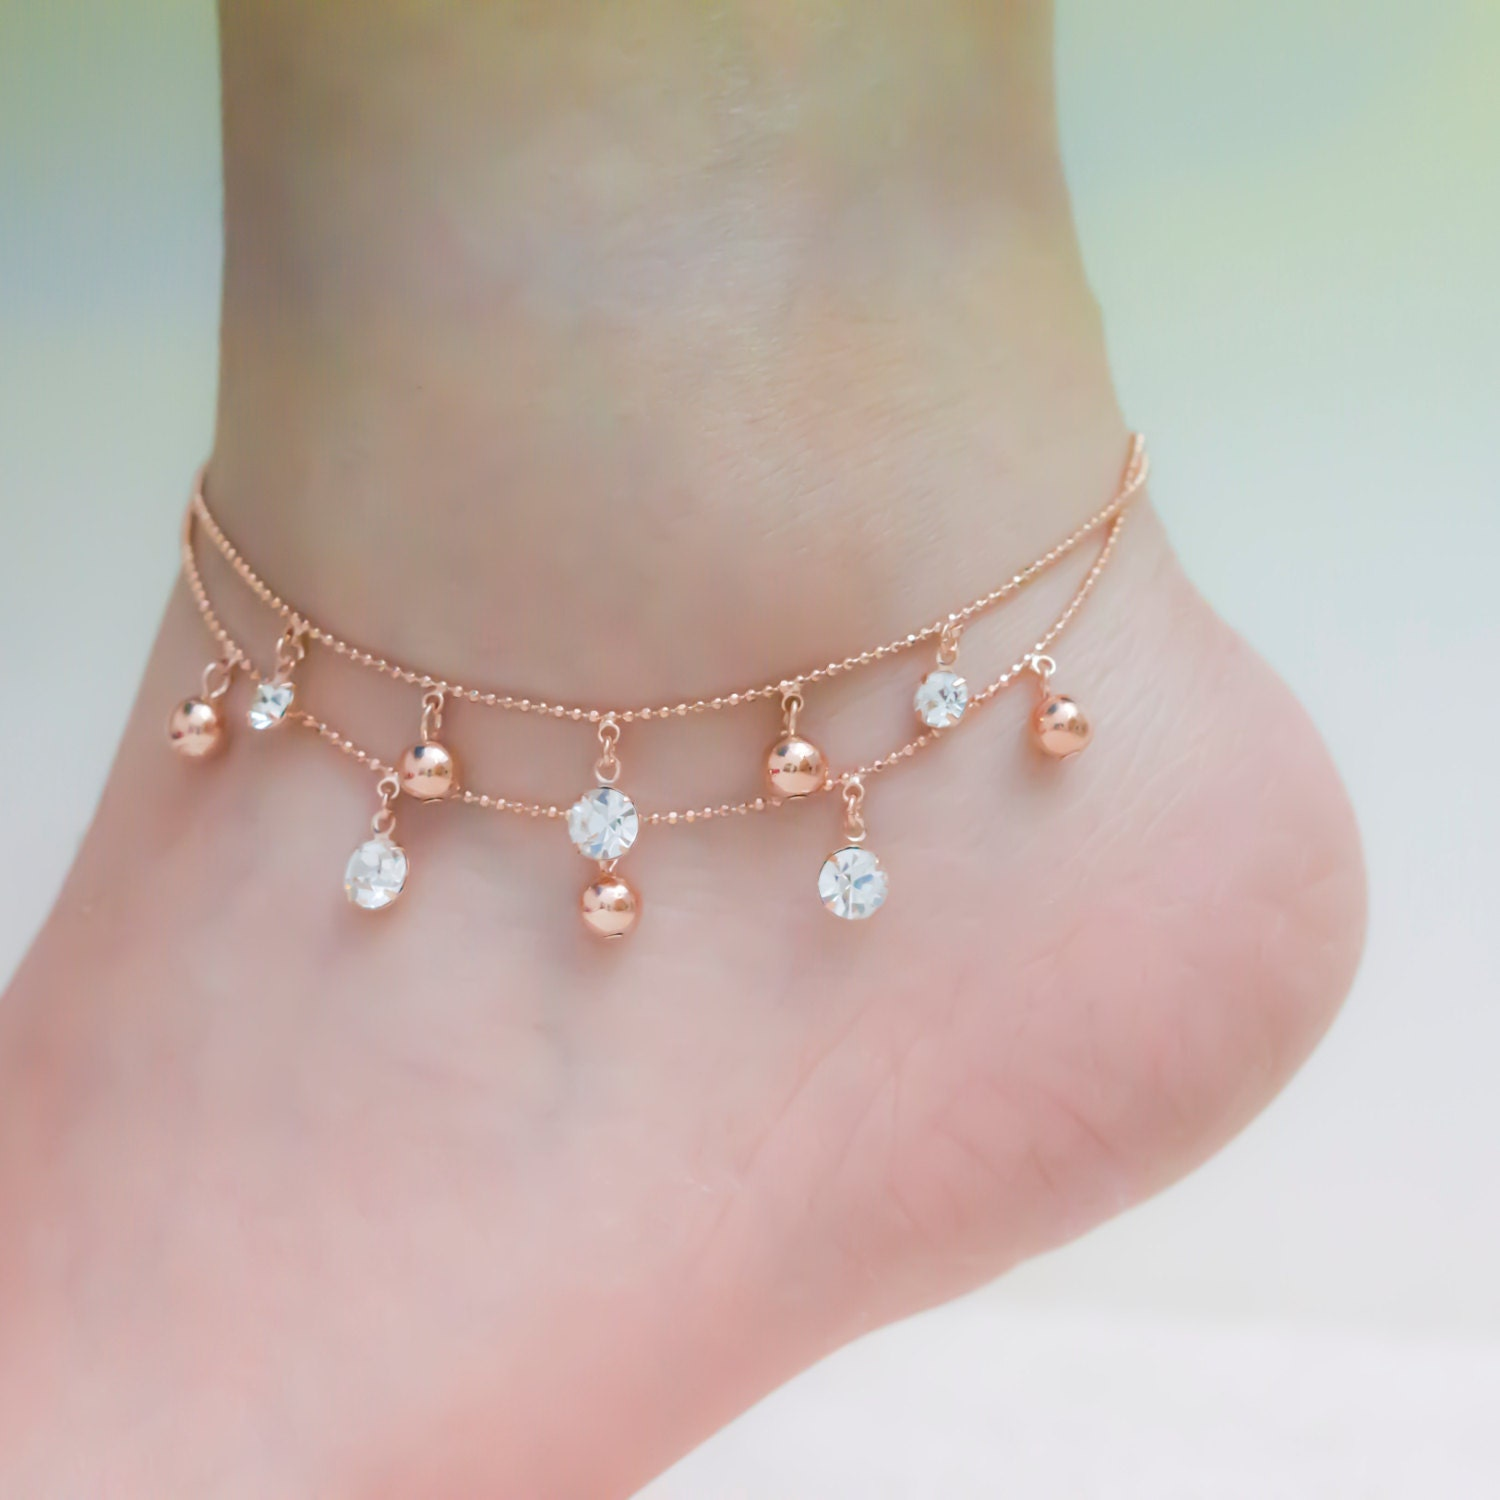 silver ankle tailored subcat anklets gold overstock jewelry bracelet anklet bracelets over beaded less watches for